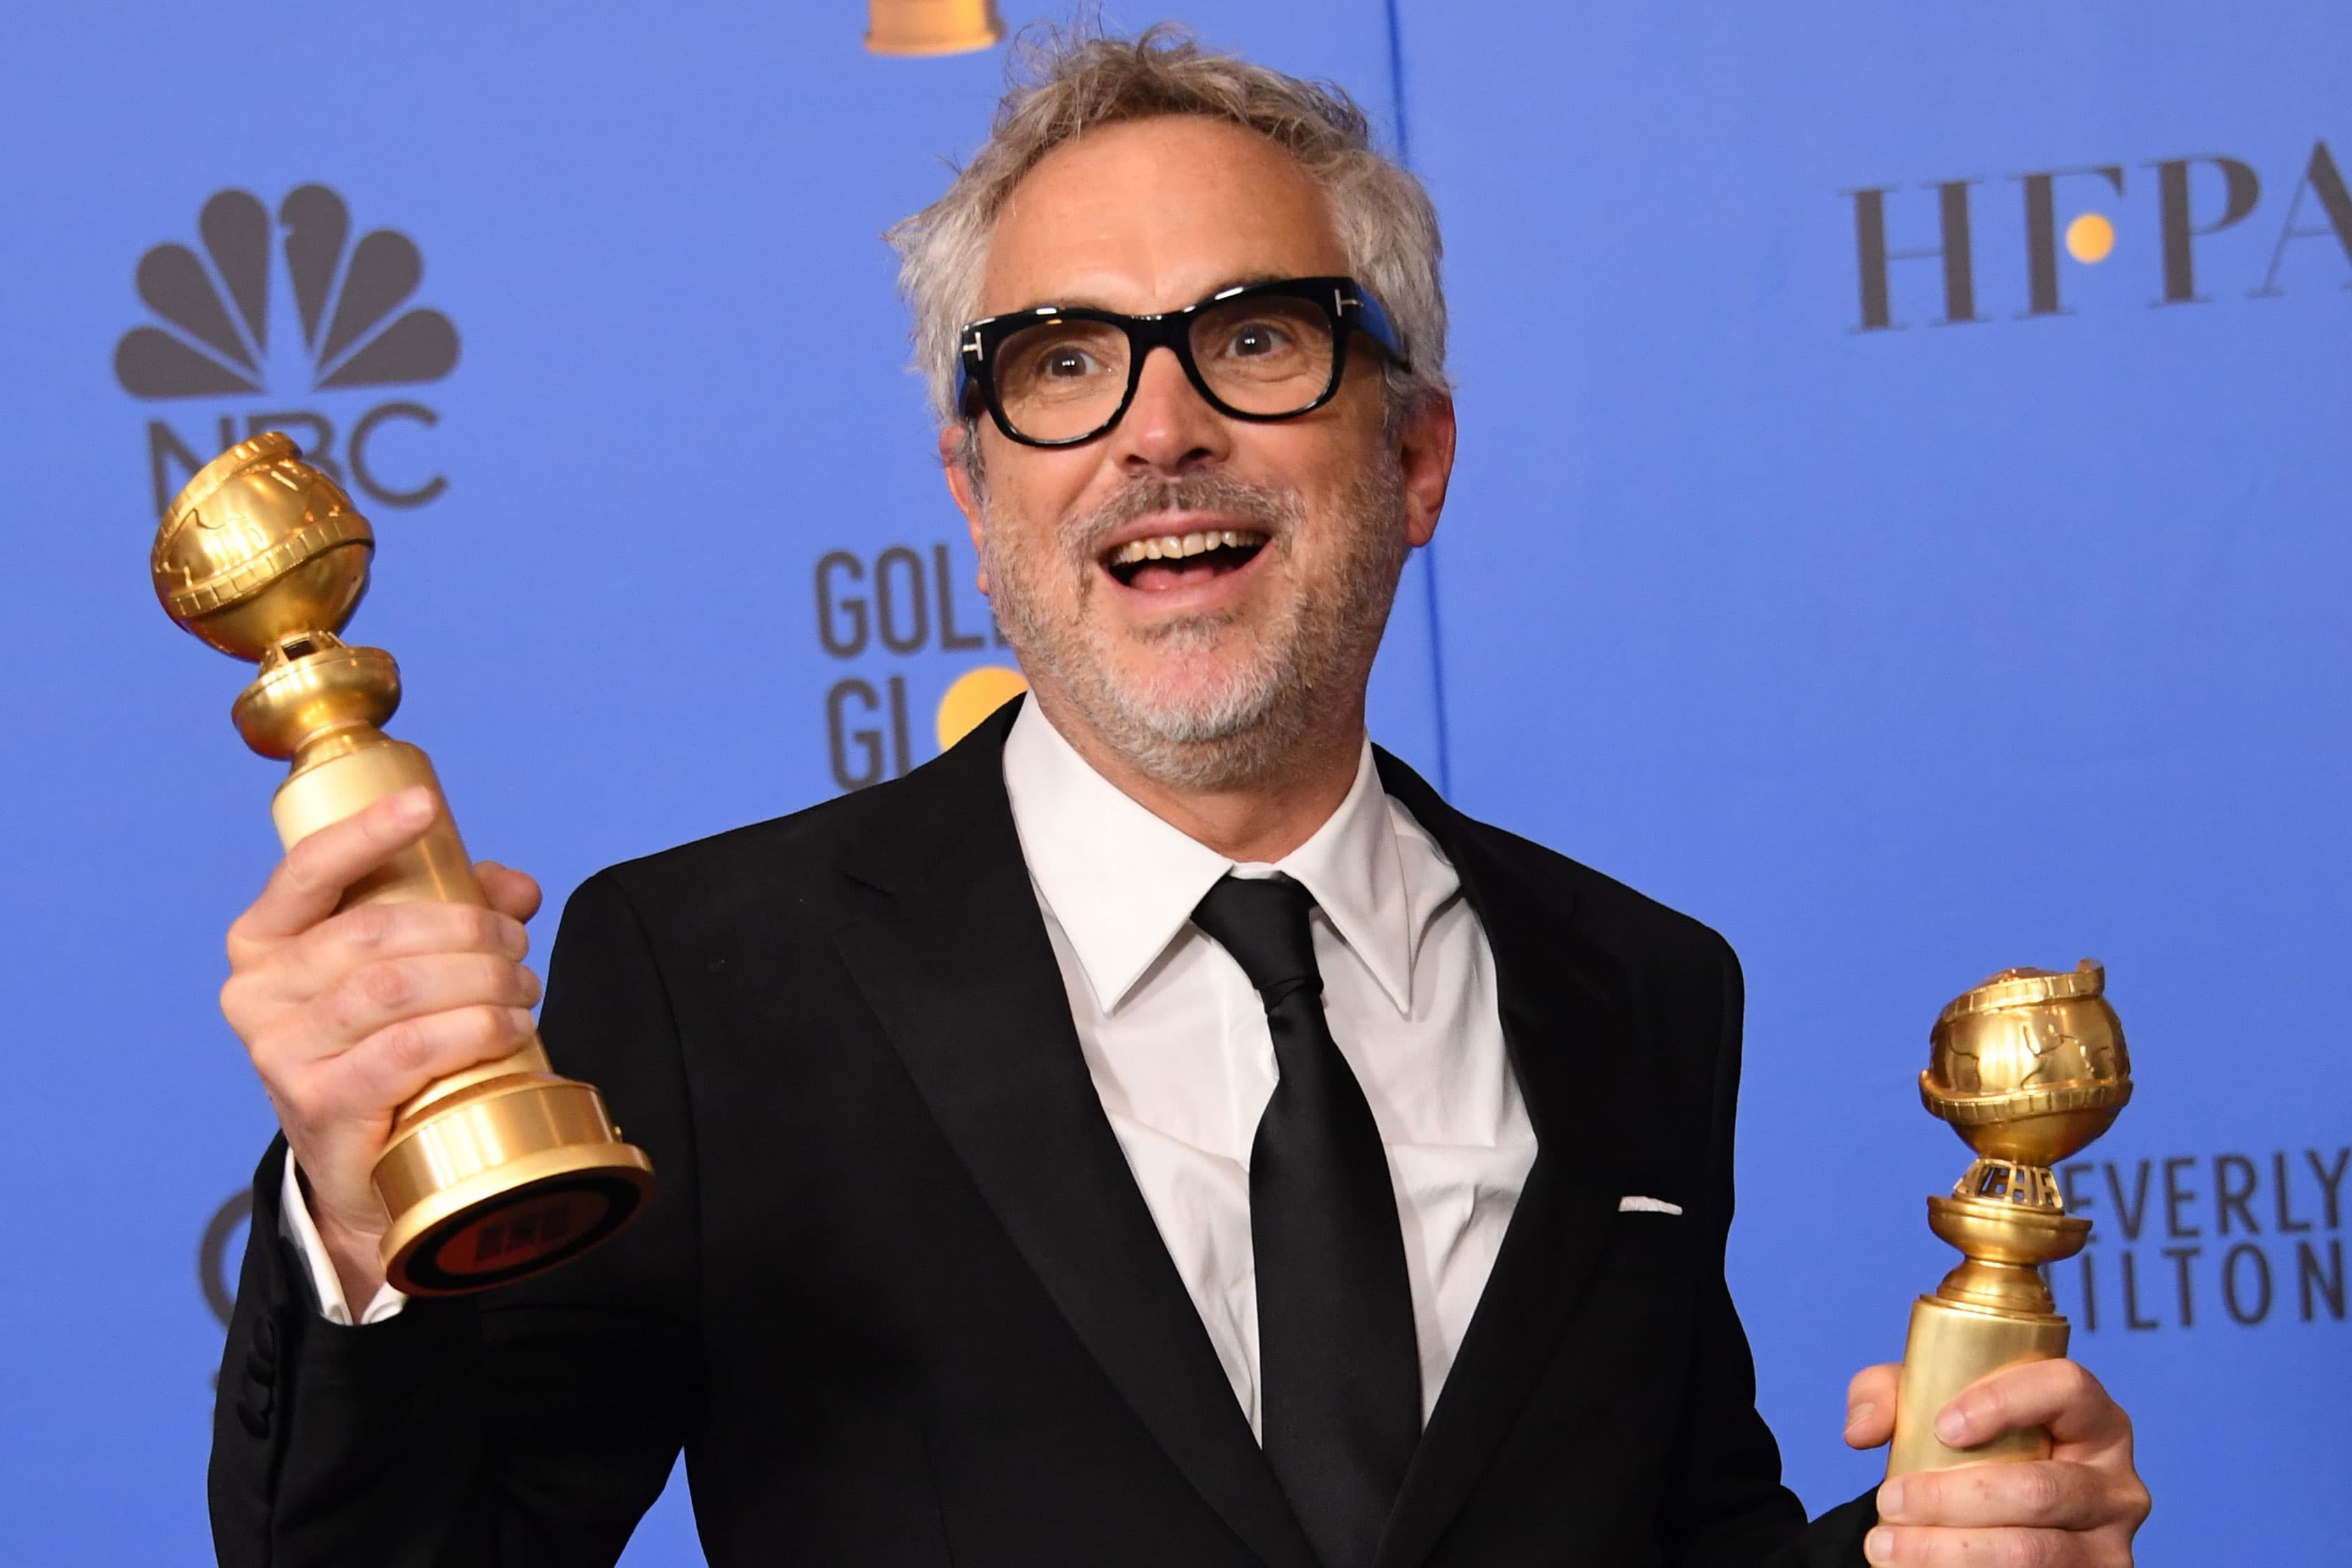 Netflix 'Roma' Oscar win could shift movie industry away from theaters